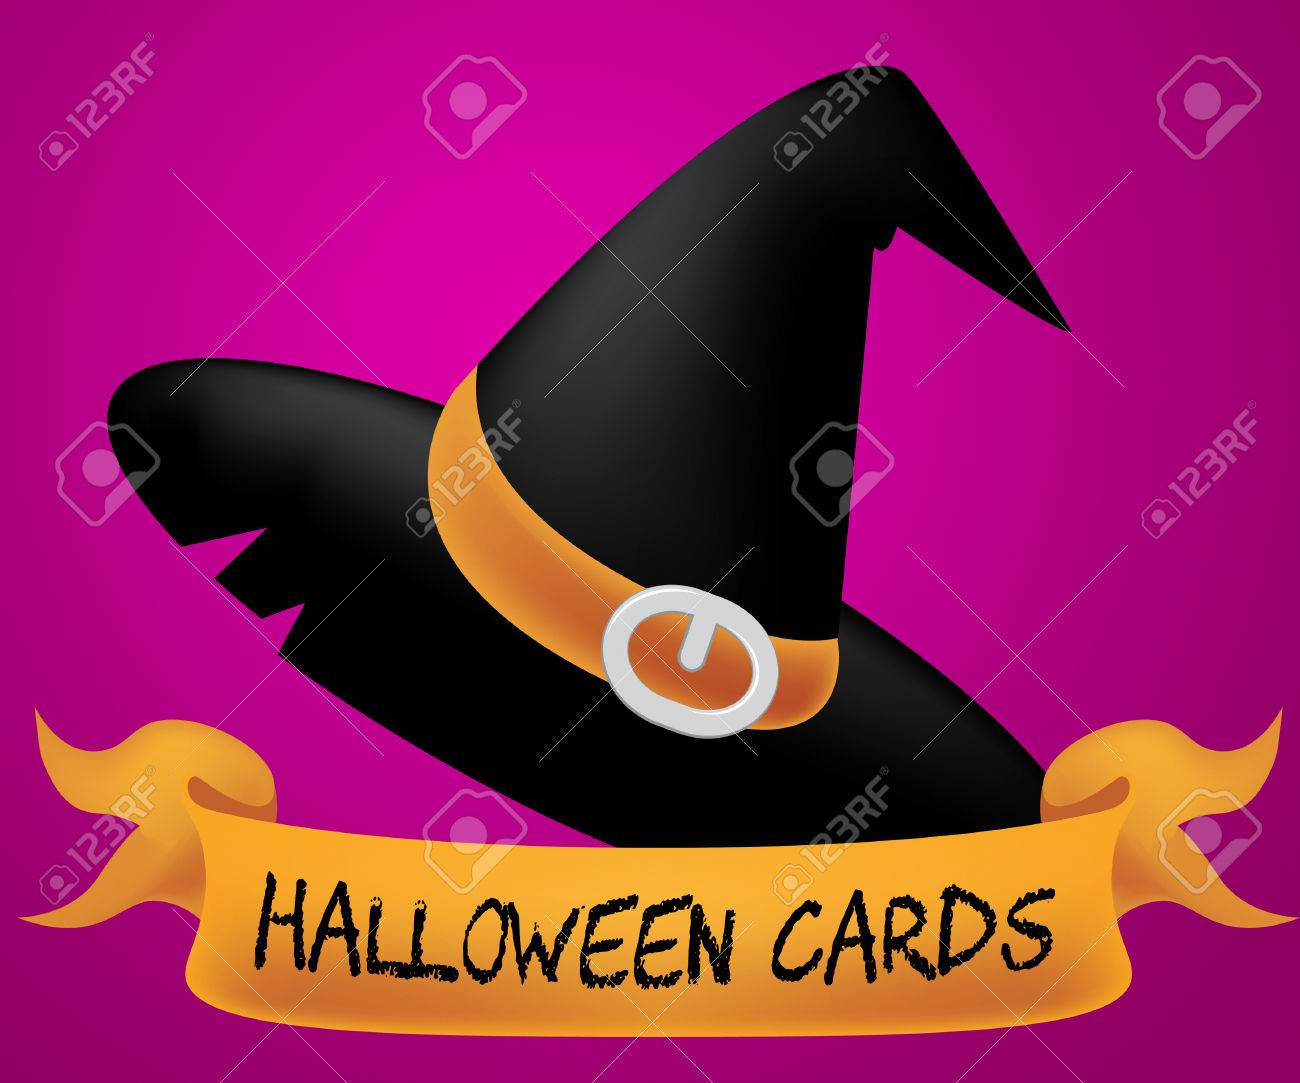 Halloween Cards Meaning Trick Or Treat And Greeting Ghost Stock